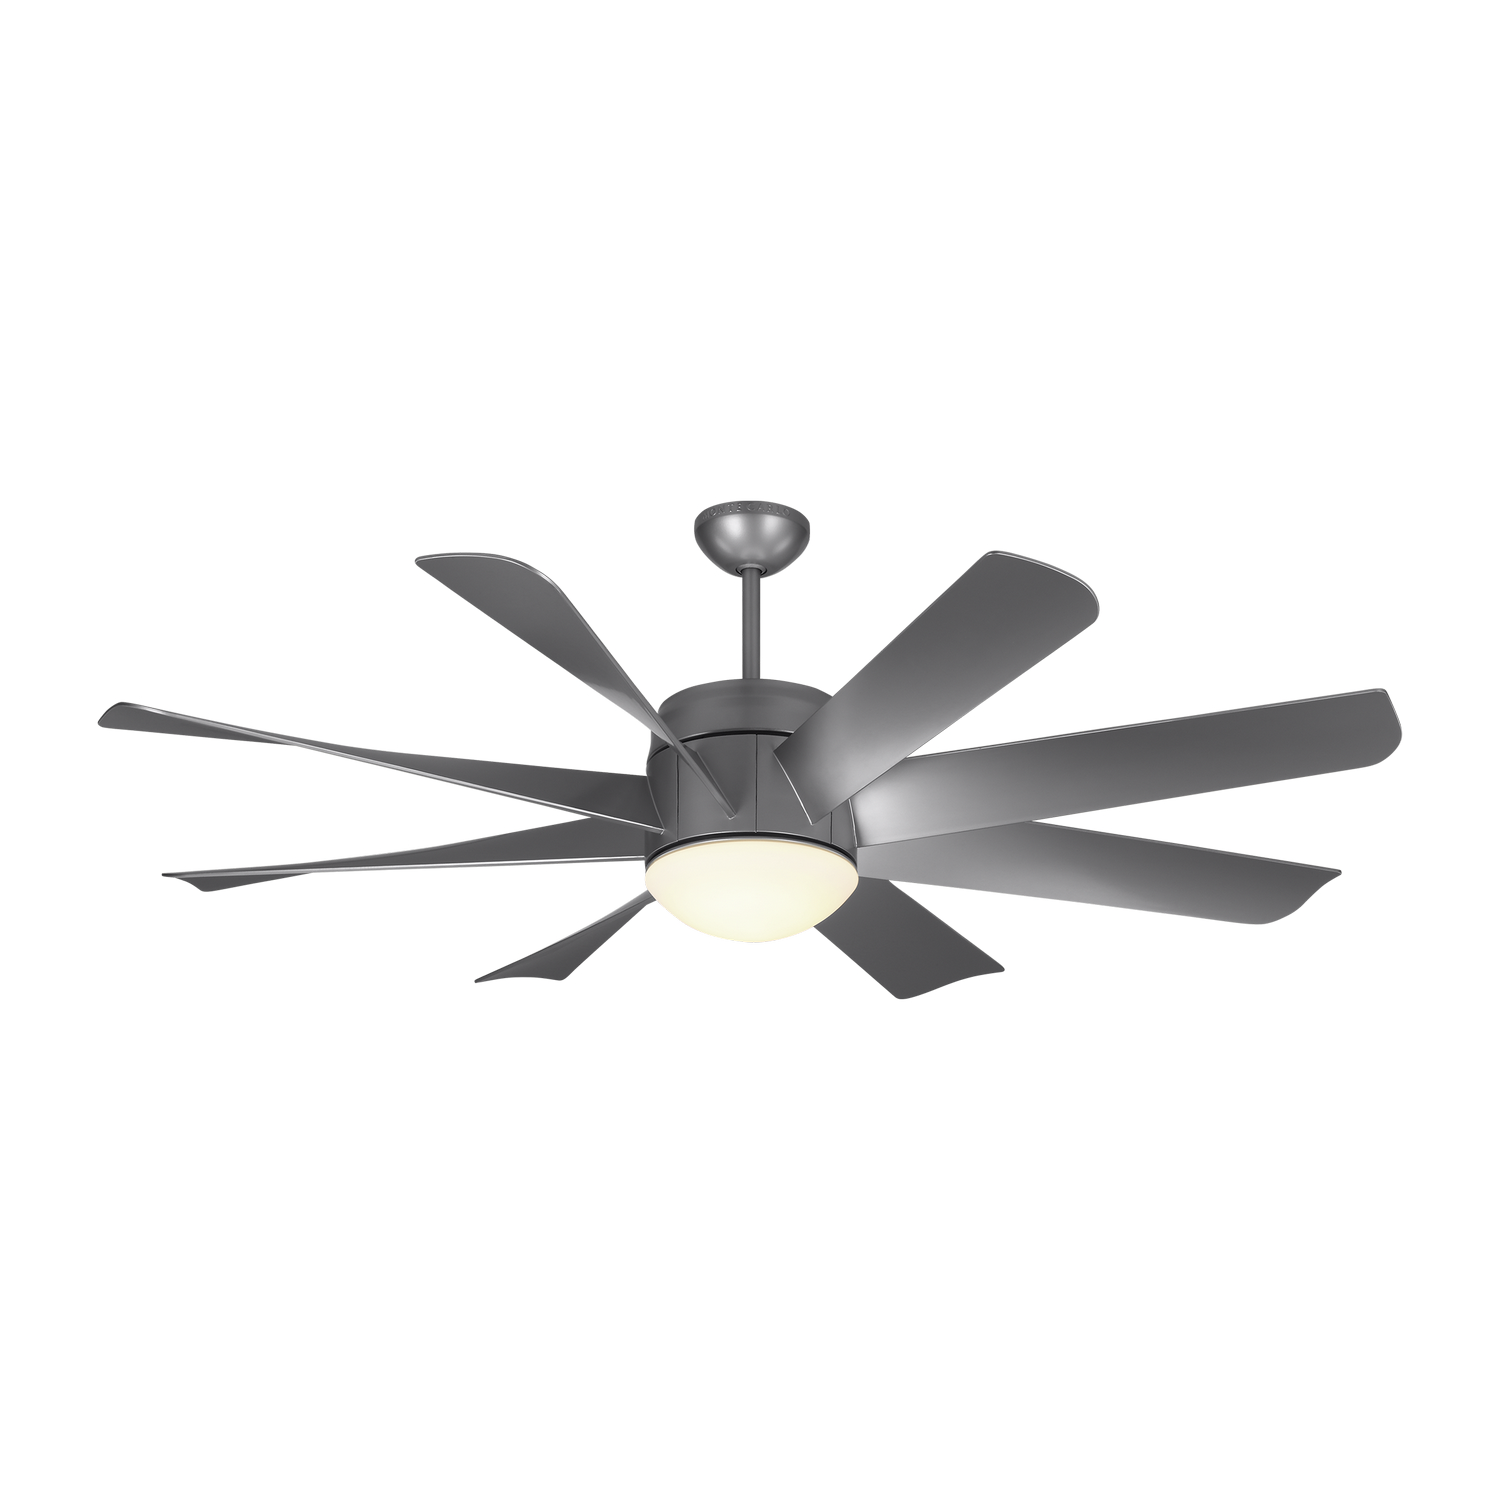 56 inchCeiling Fan from the Turbine LED collection by Monte Carlo 8TNR56PBSD V1